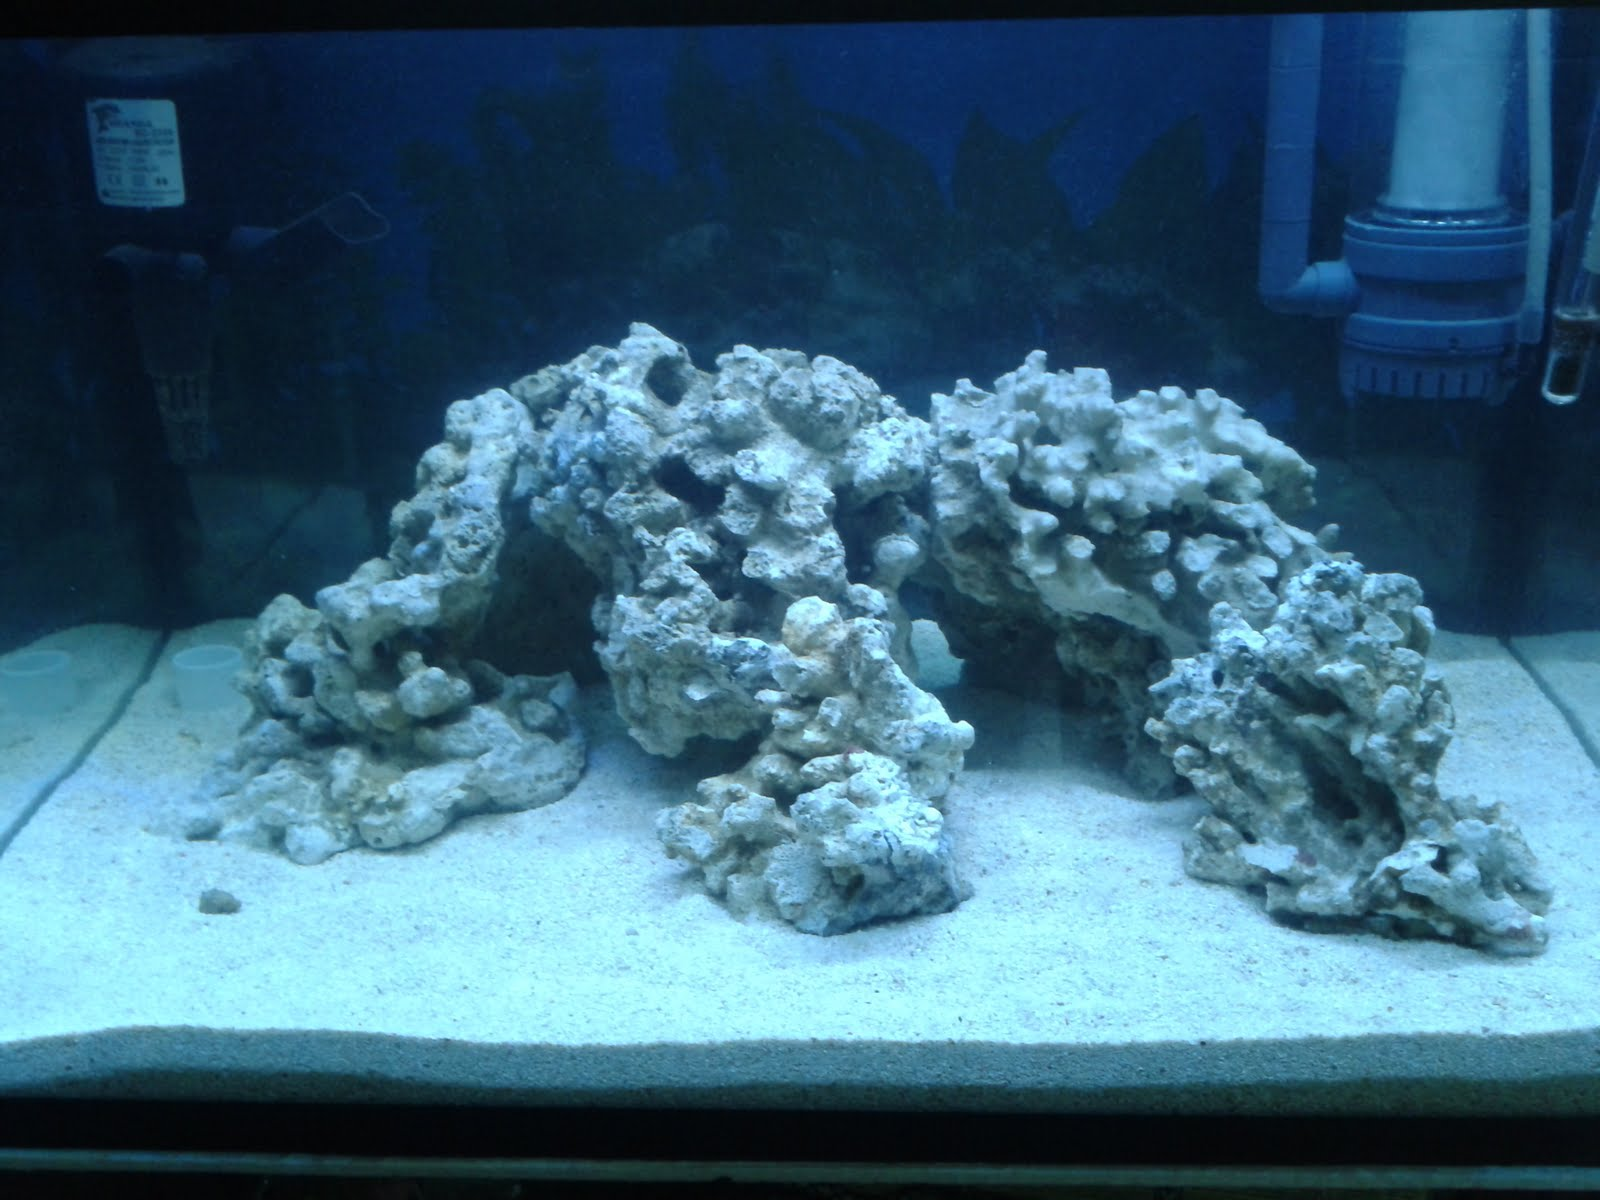 S c a r l e t Reef: Day 11 (9/6/2011): New aquascape